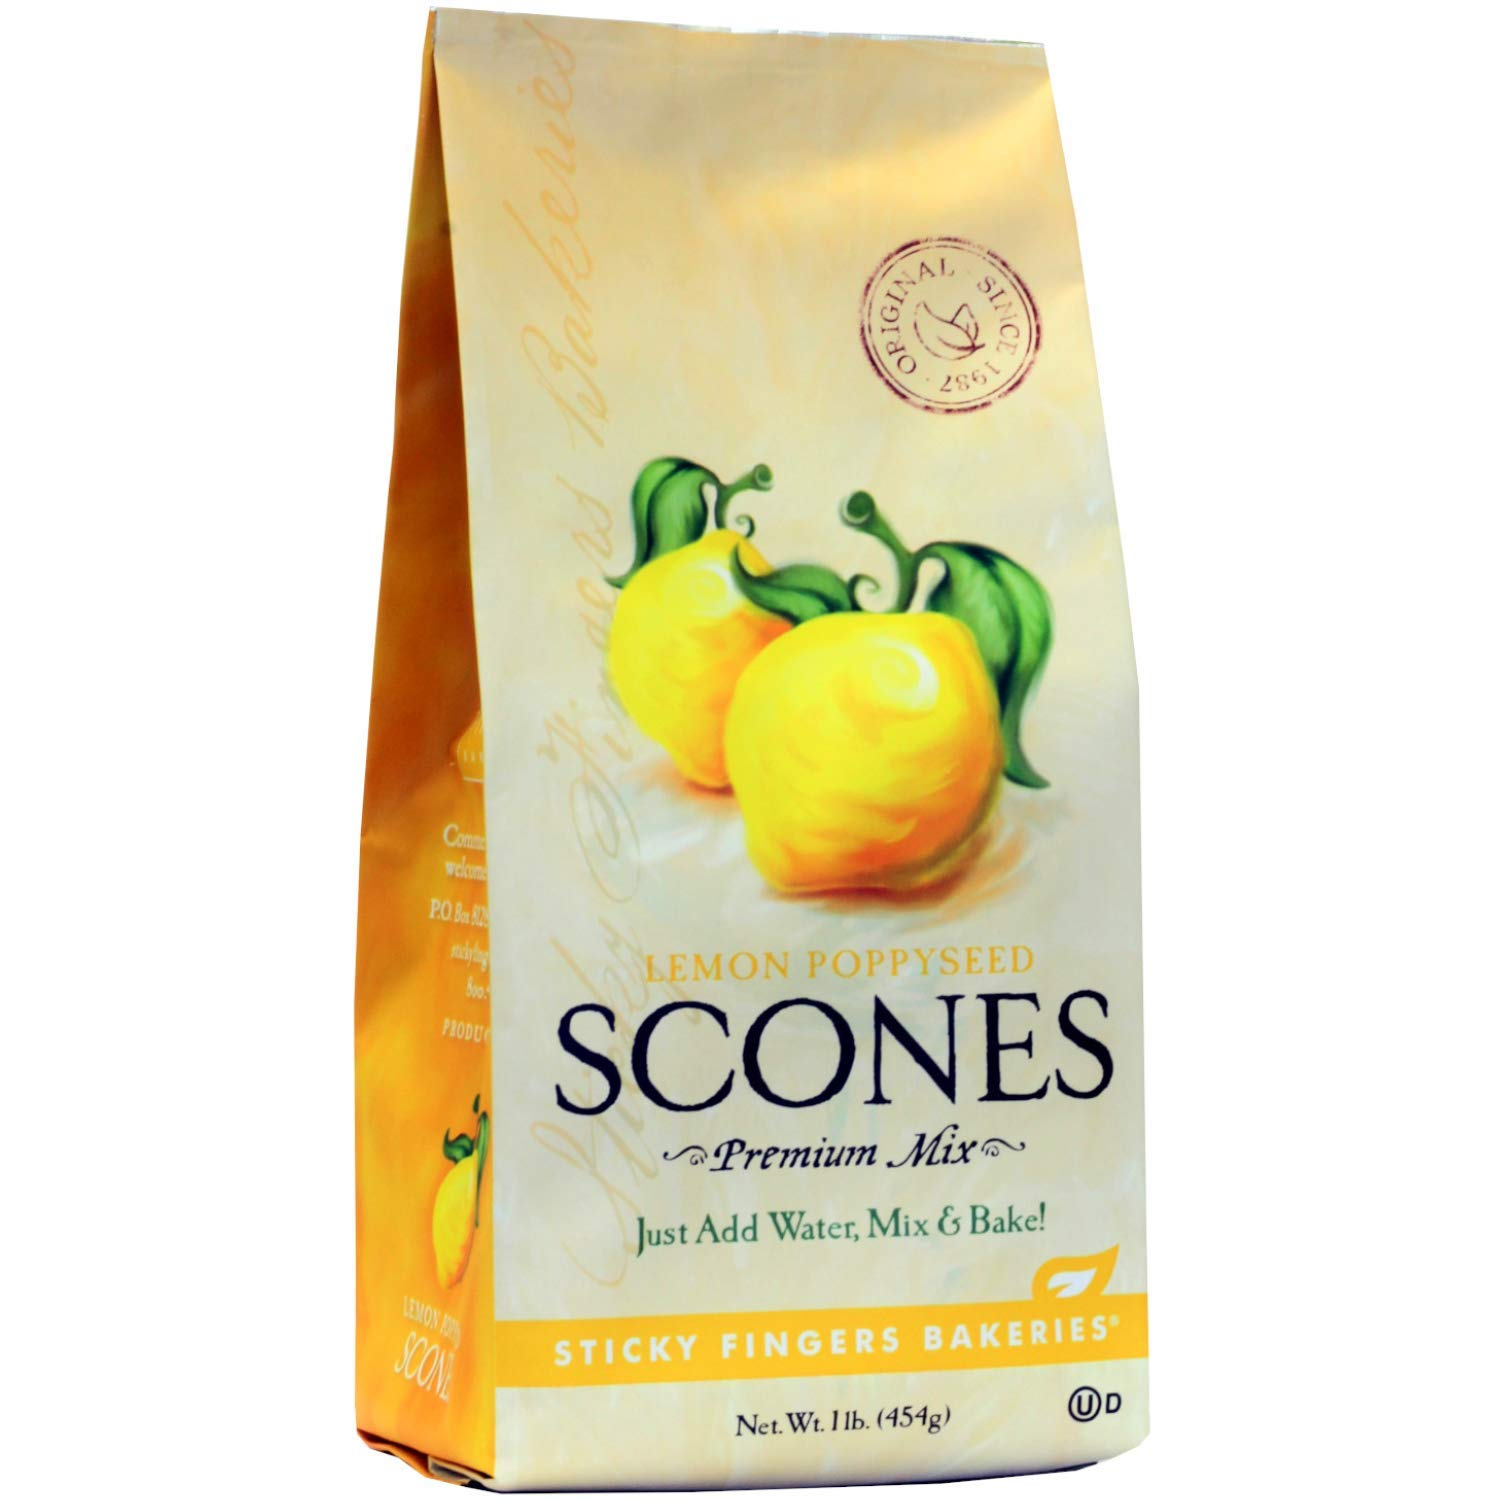 Sticky Fingers Bakeries, English Scone Mix, Lemon Poppyseed, Just Add Water, Mix, and Bake. Makes 12 Scones (Pack of 1)